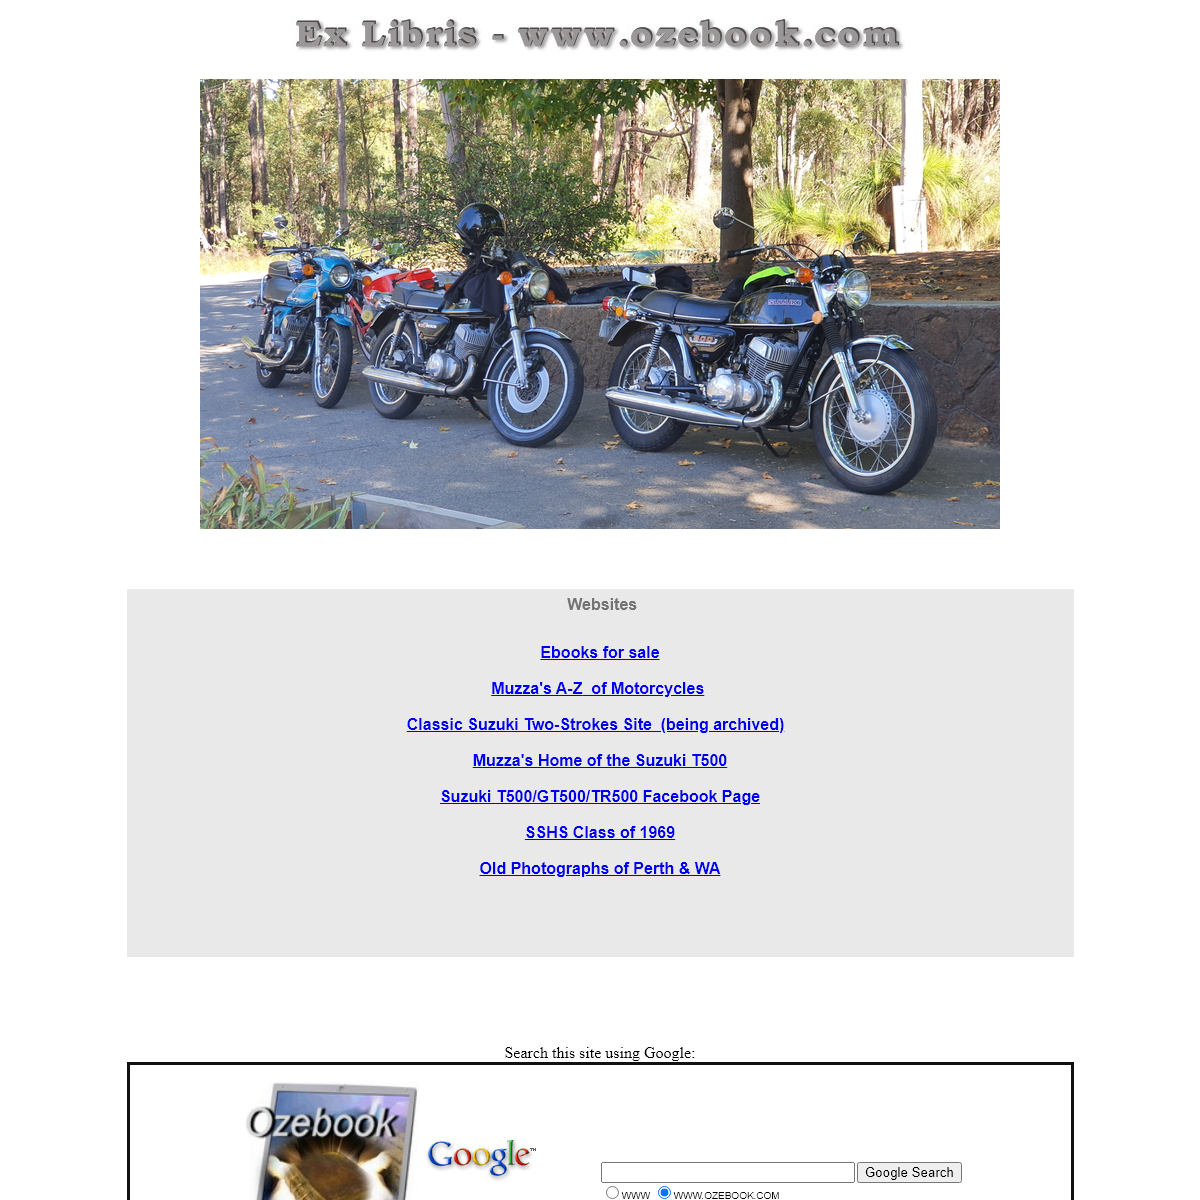 Ex-Libris Ozebook, rare, out-of-print, collectible, historic and original electronic books (ebooks, e-books or digital books) on